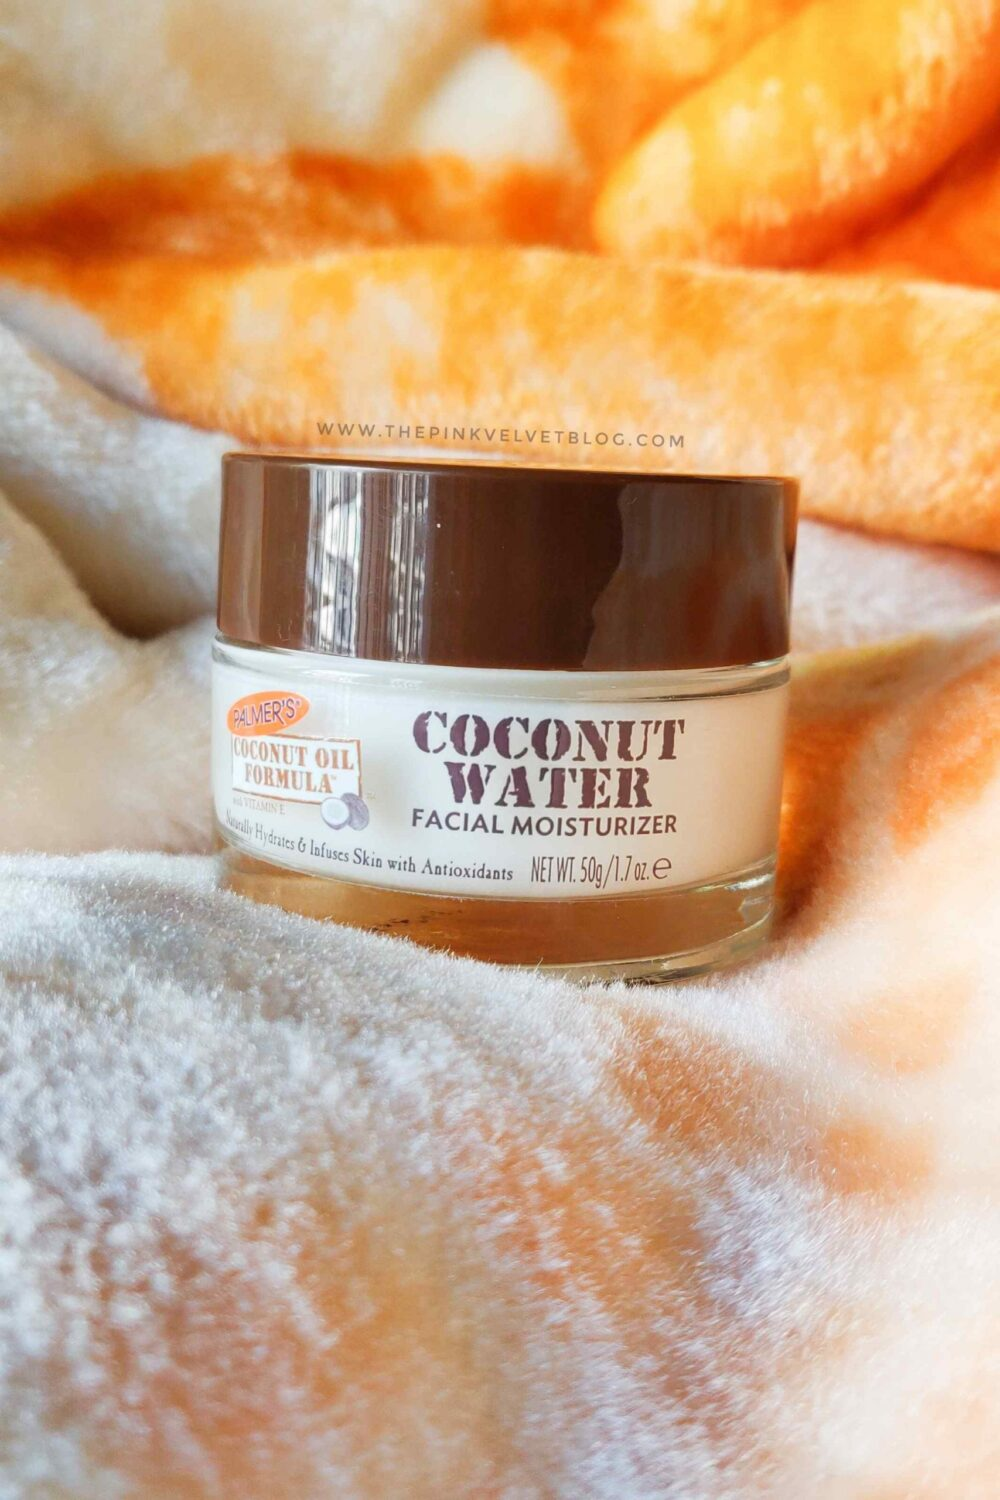 Palmer's Coconut Oil Formula Coconut Water Facial Moisturizer Review